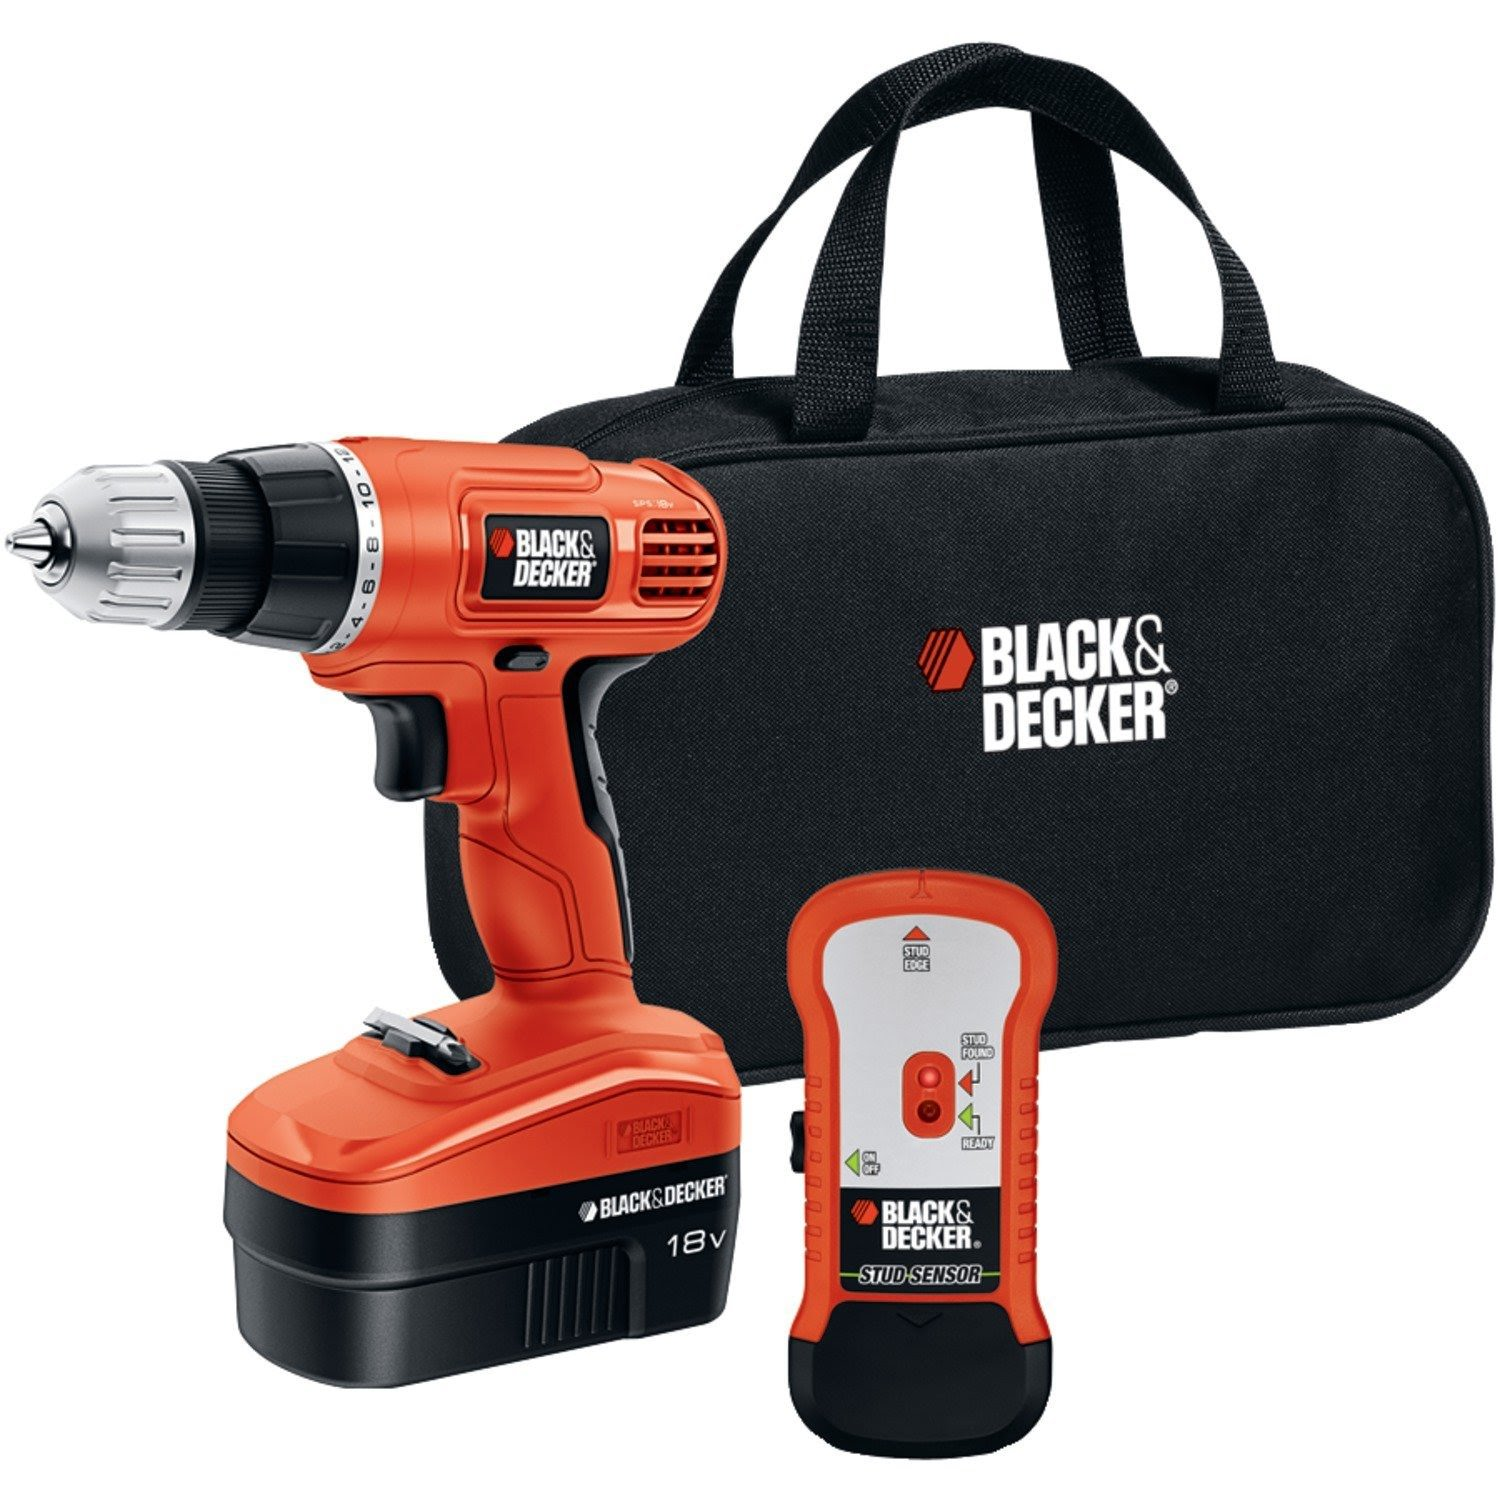 Black & Decker GCO18SFB 18V NiCAD Cordless Drill + Stud Finder & Bag by Stanley Black & Decker